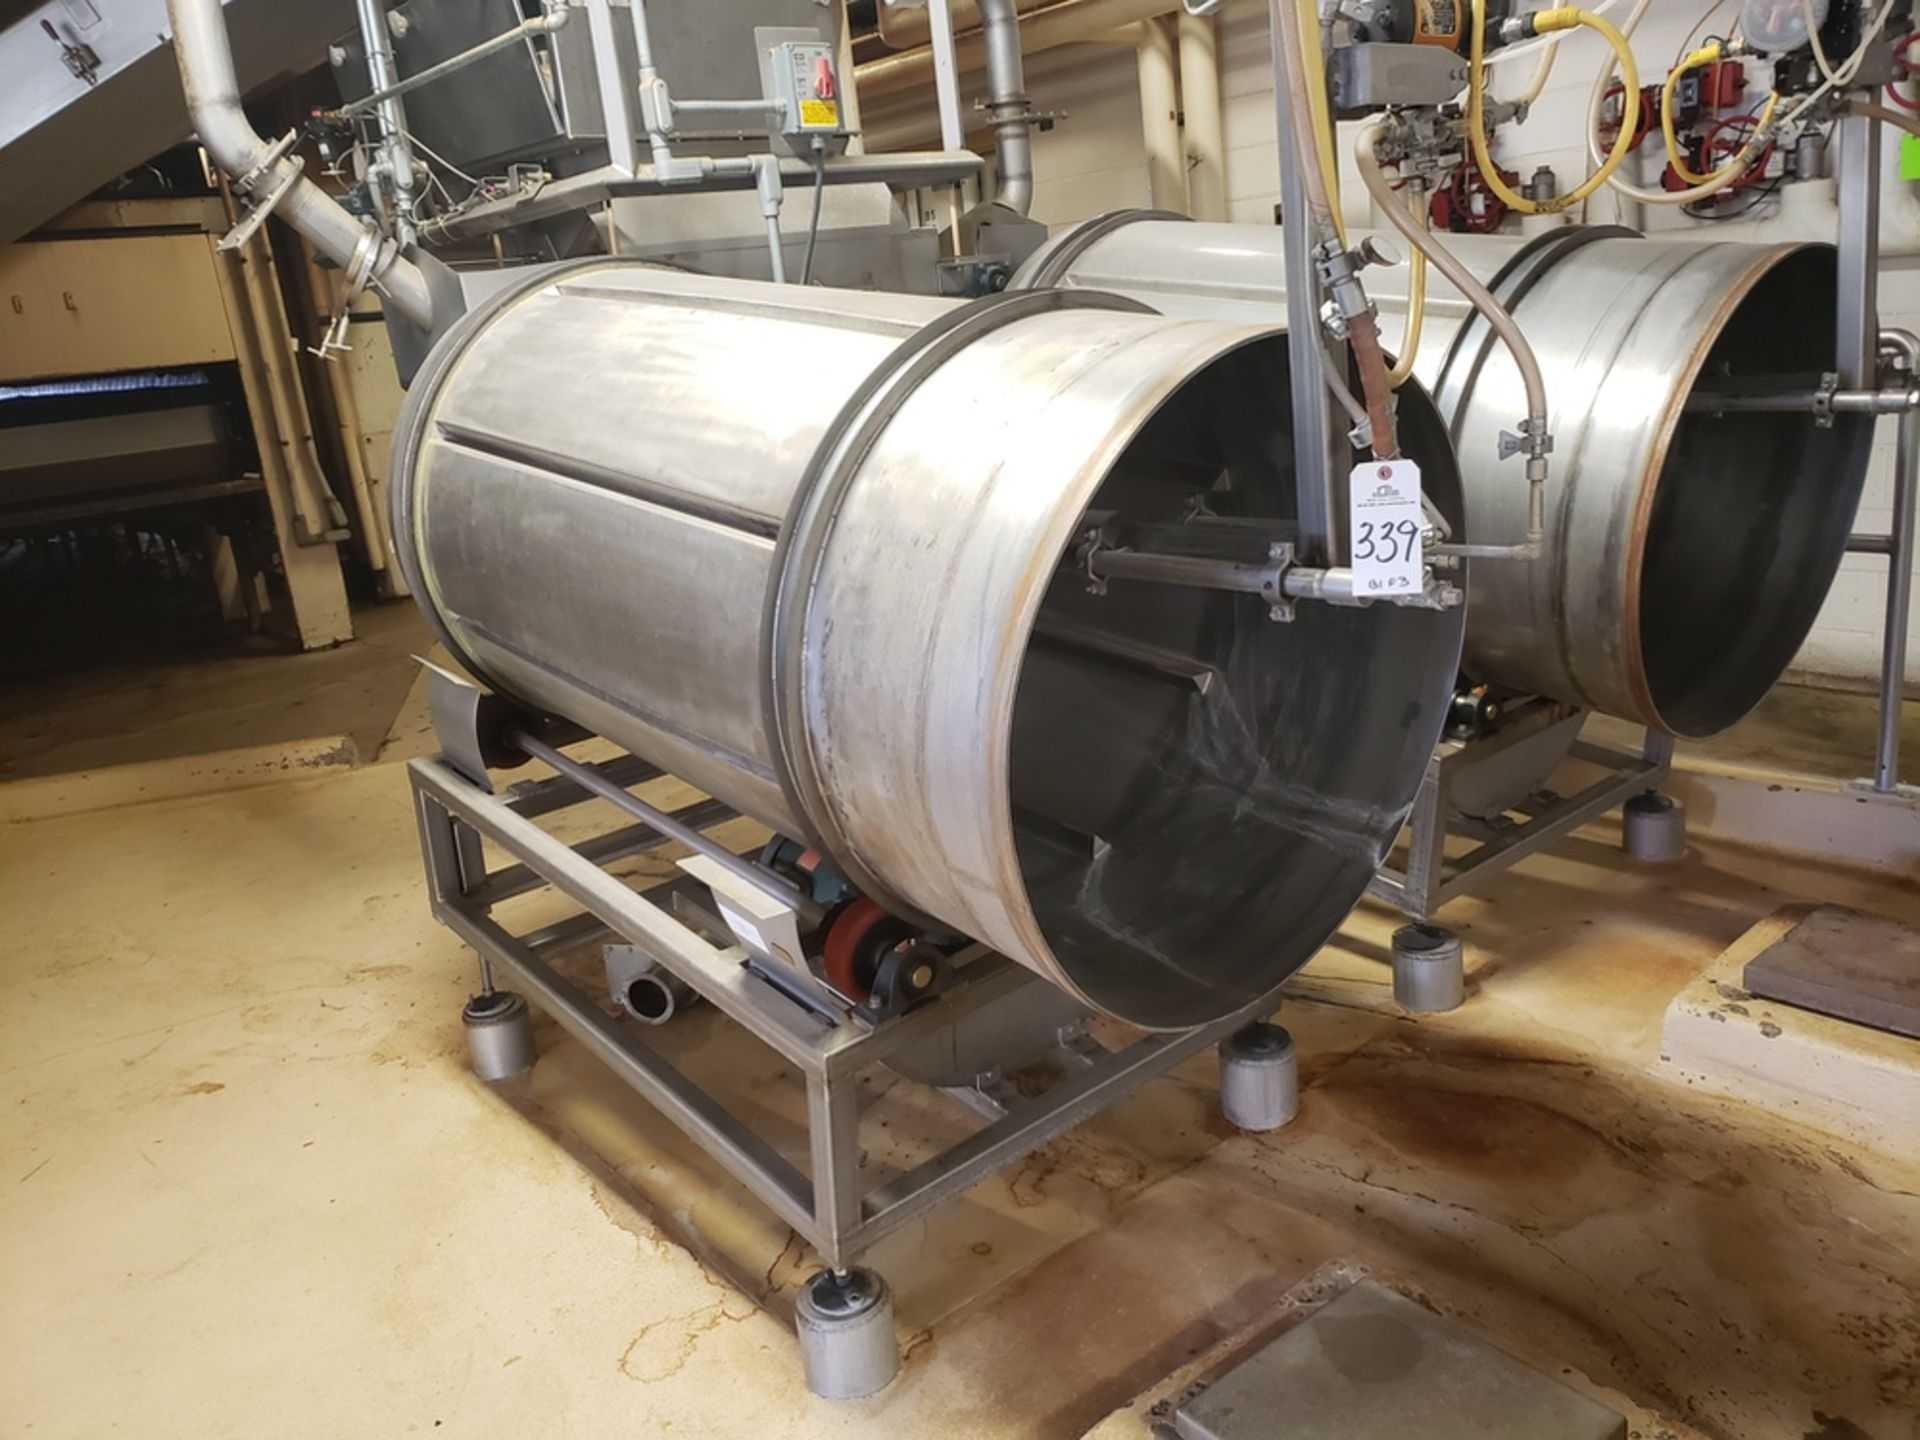 Lot 339 - Stainless Steel Glazing Tumbler   Rig Fee: $600